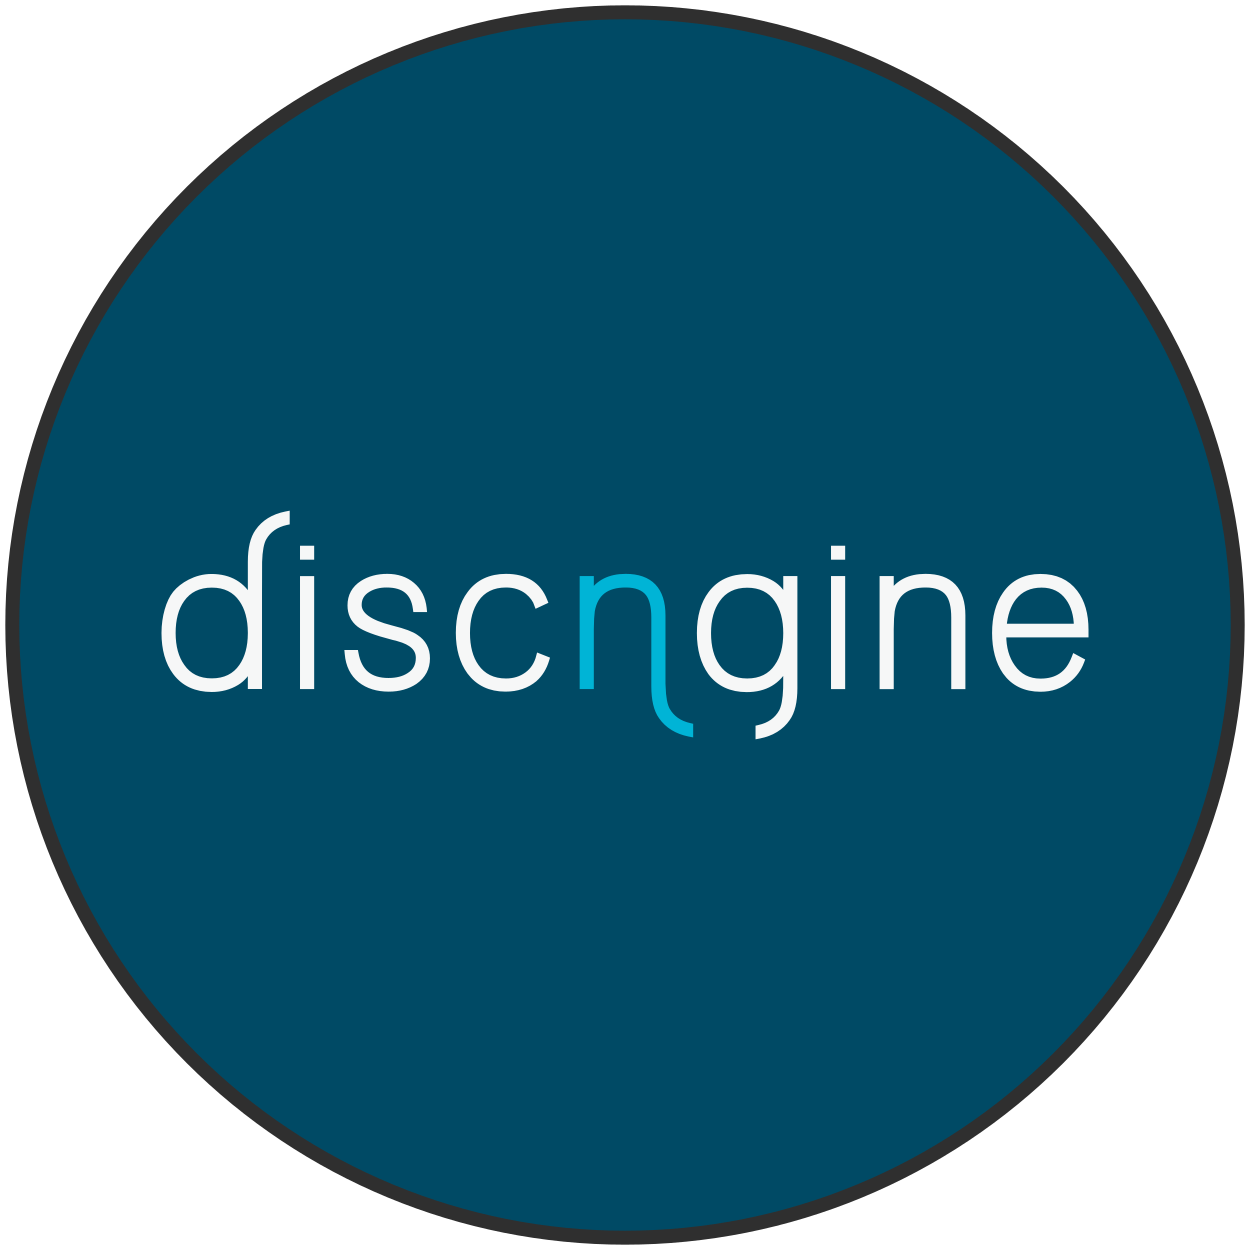 Discngine - Life Science Research Softwares & Services